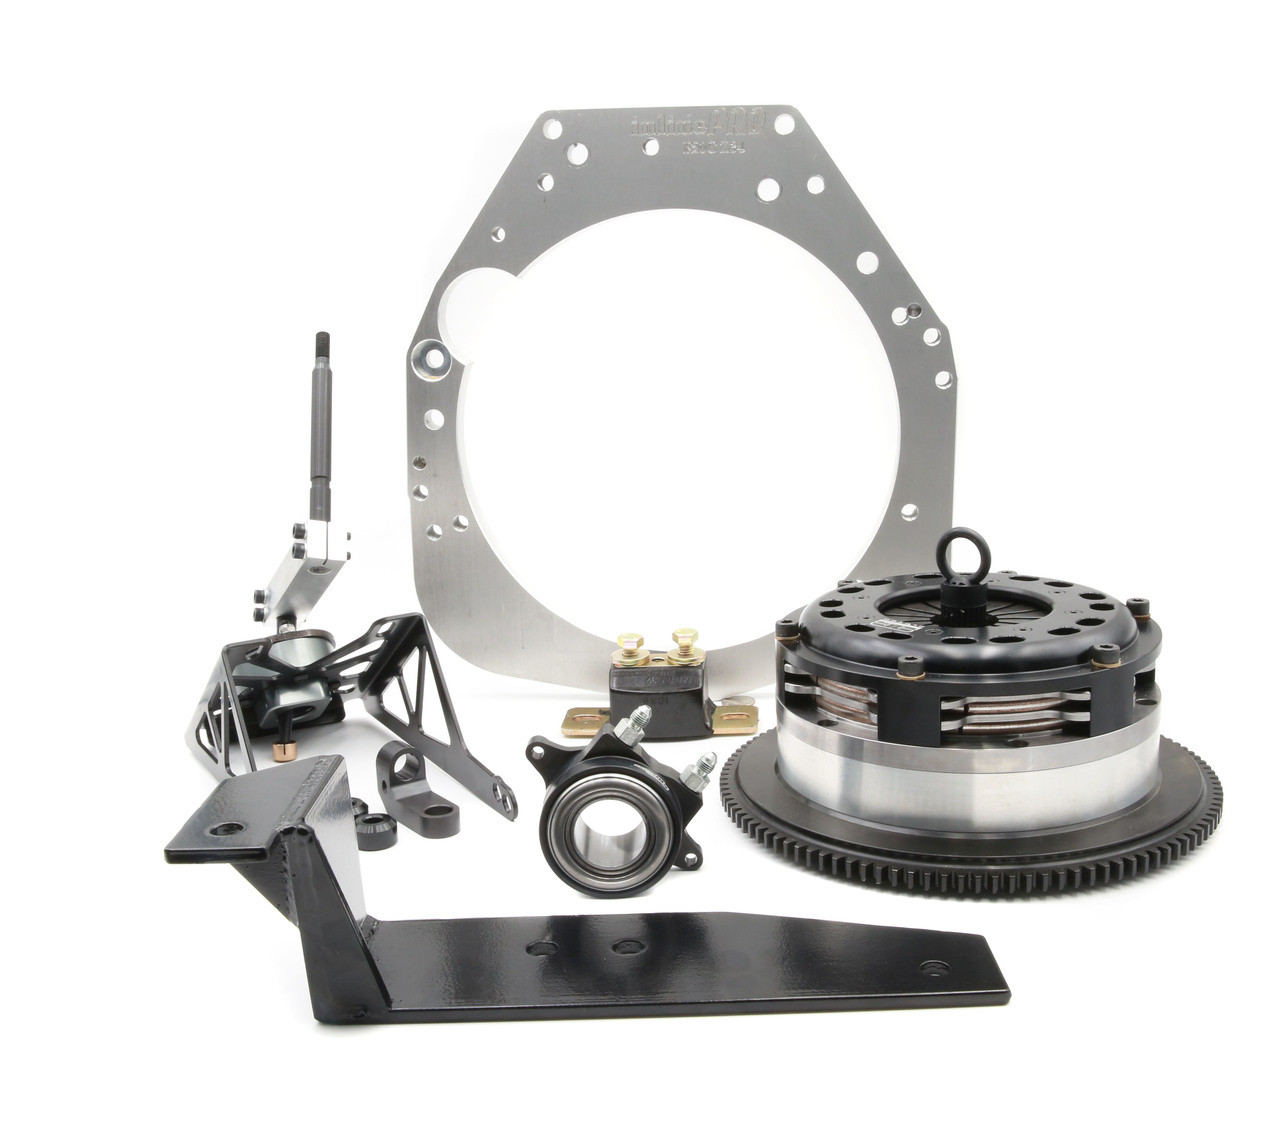 InlinePRO S2000 F2Z33/34 CD009 Trans Conversion Kit